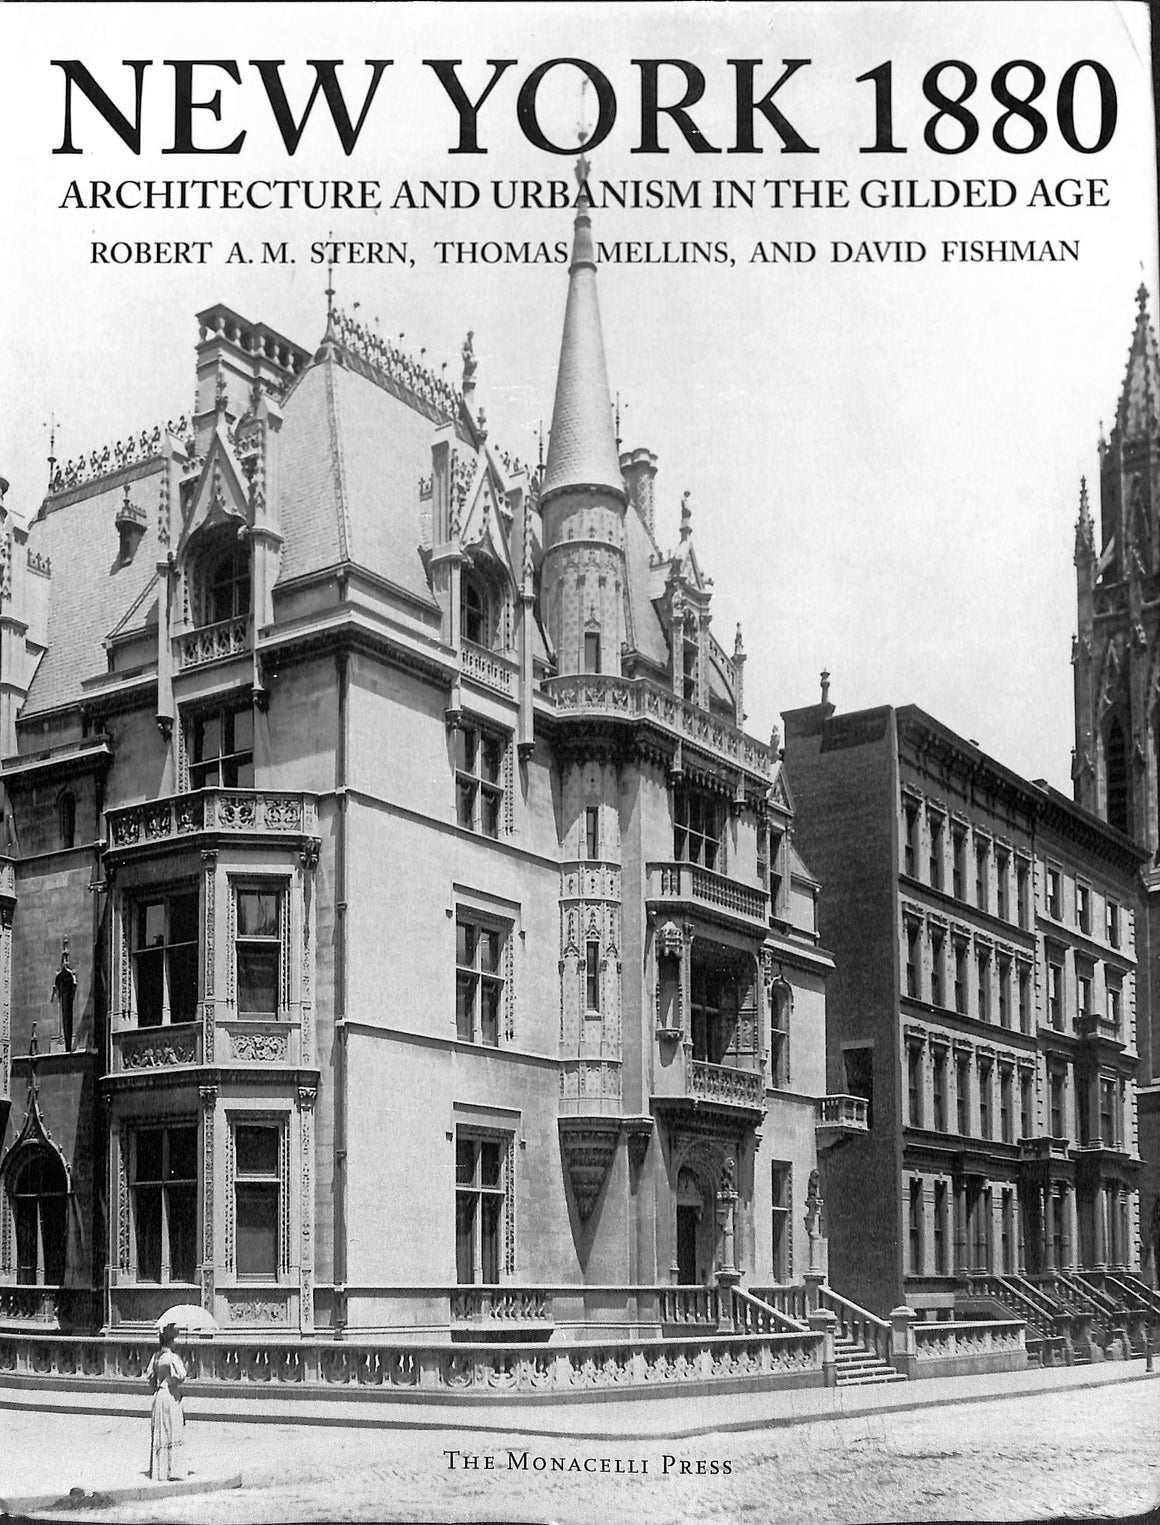 """New York: Architecture and Urbanism Between the Second World War and The Bicentennial"" 1995 STERN Robert A.M., MELLINS Thomas, FISHMAN Davis"